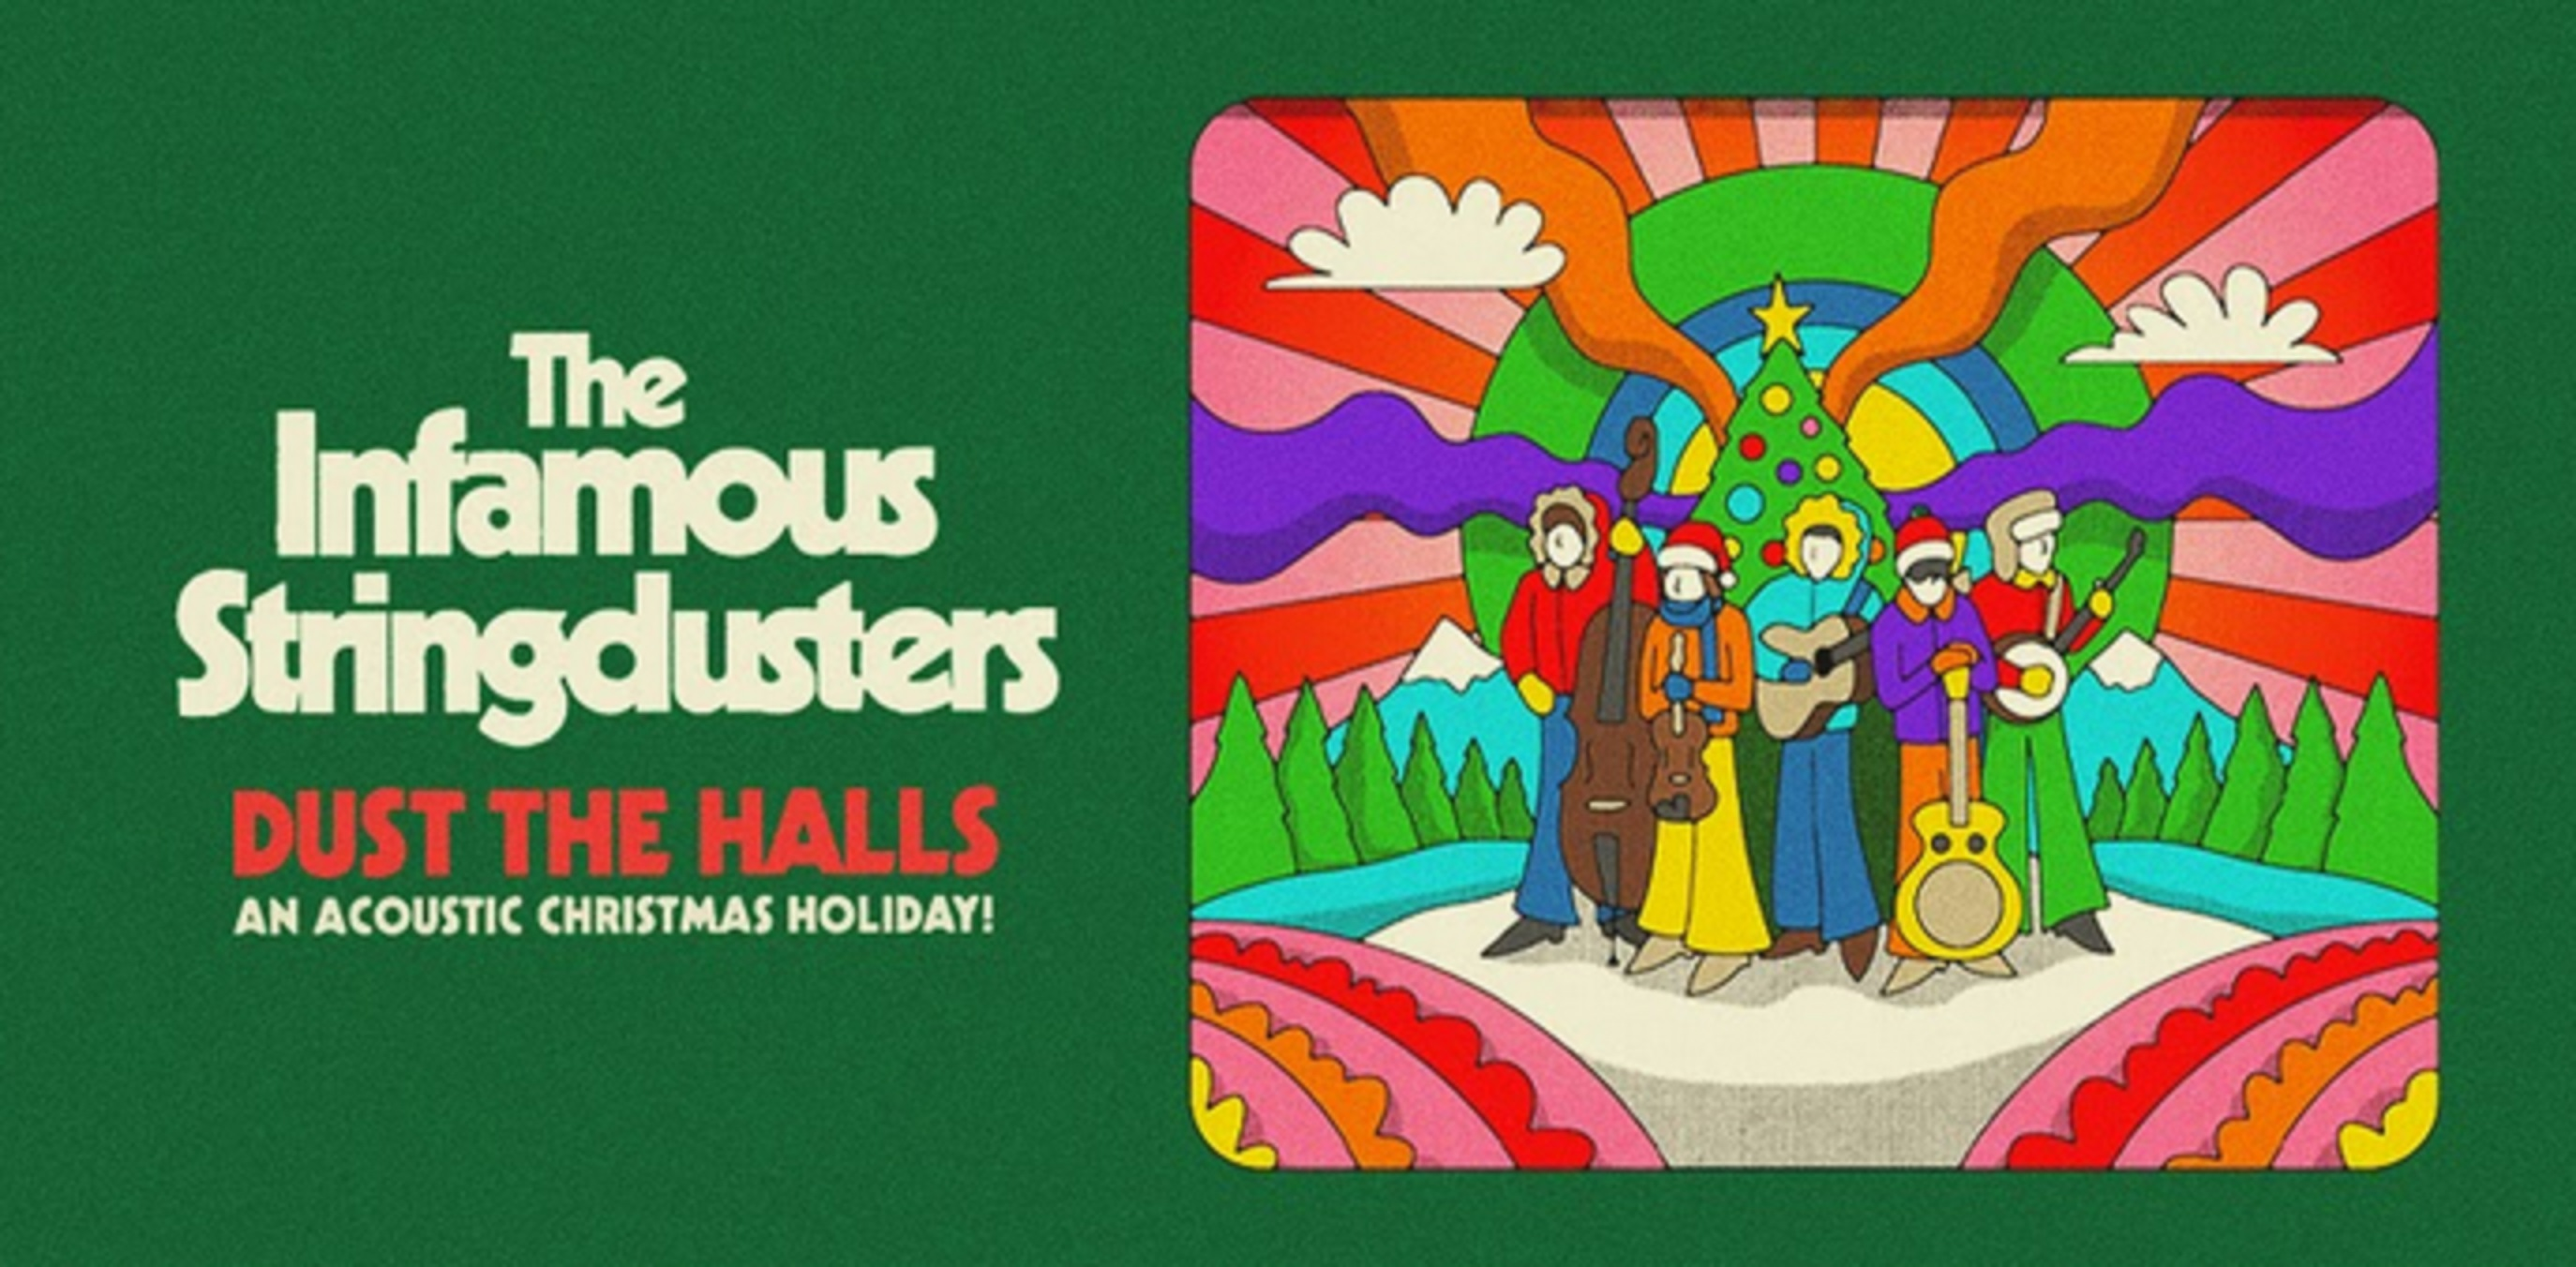 The Infamous Stringdusters' Dust the Halls: An Acoustic Christmas Holiday! Out Now